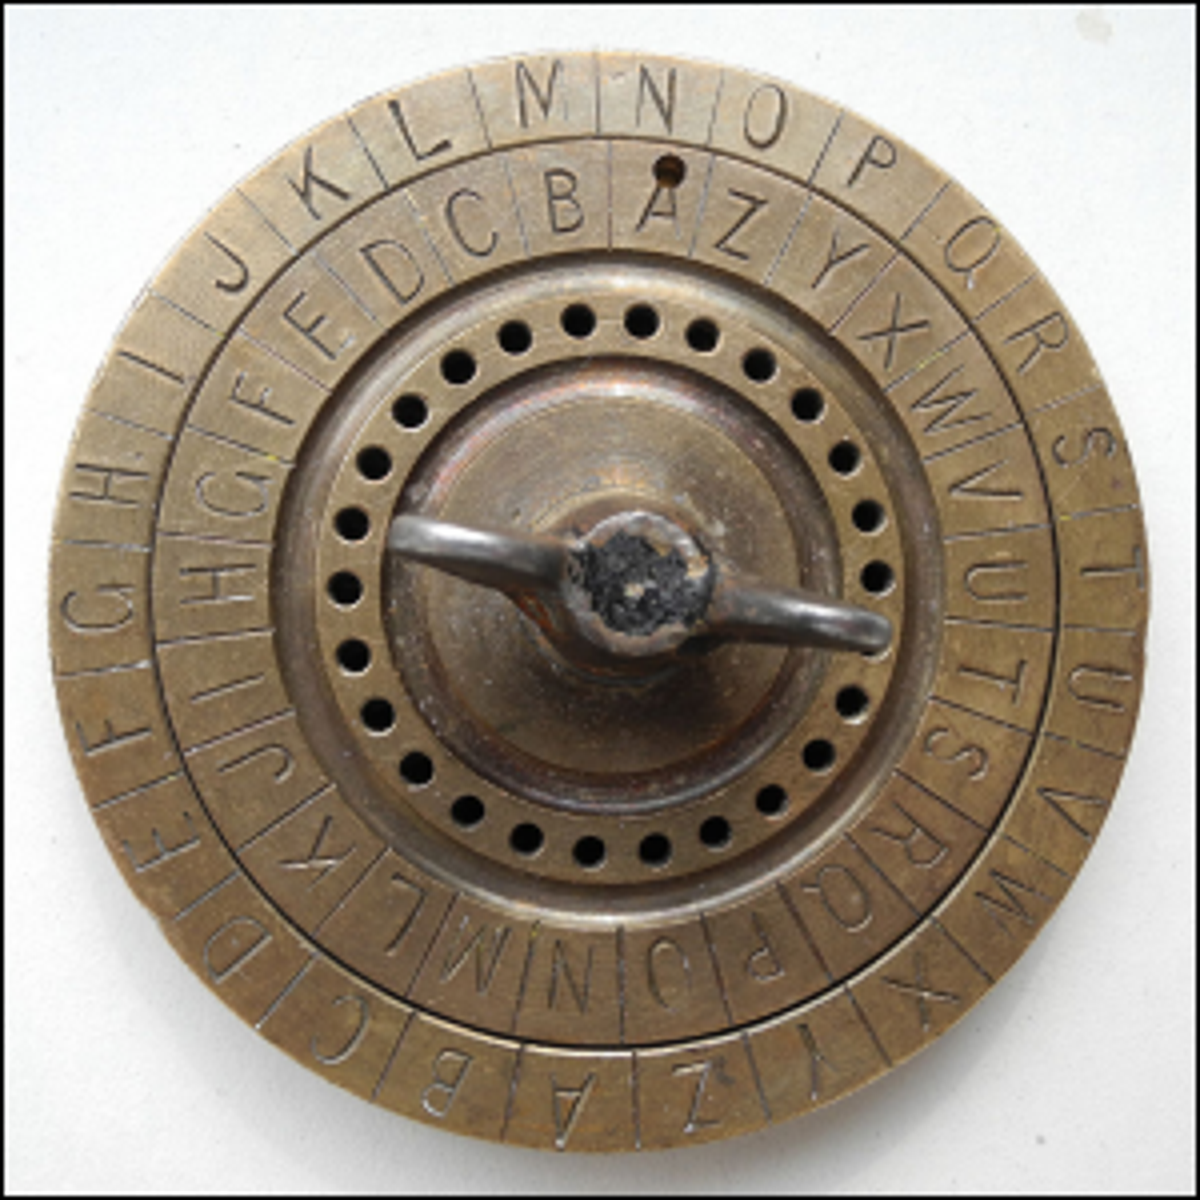 A cipher disc for substitution cipher, manufactured by Linge, Pleidelsheim (Germany).